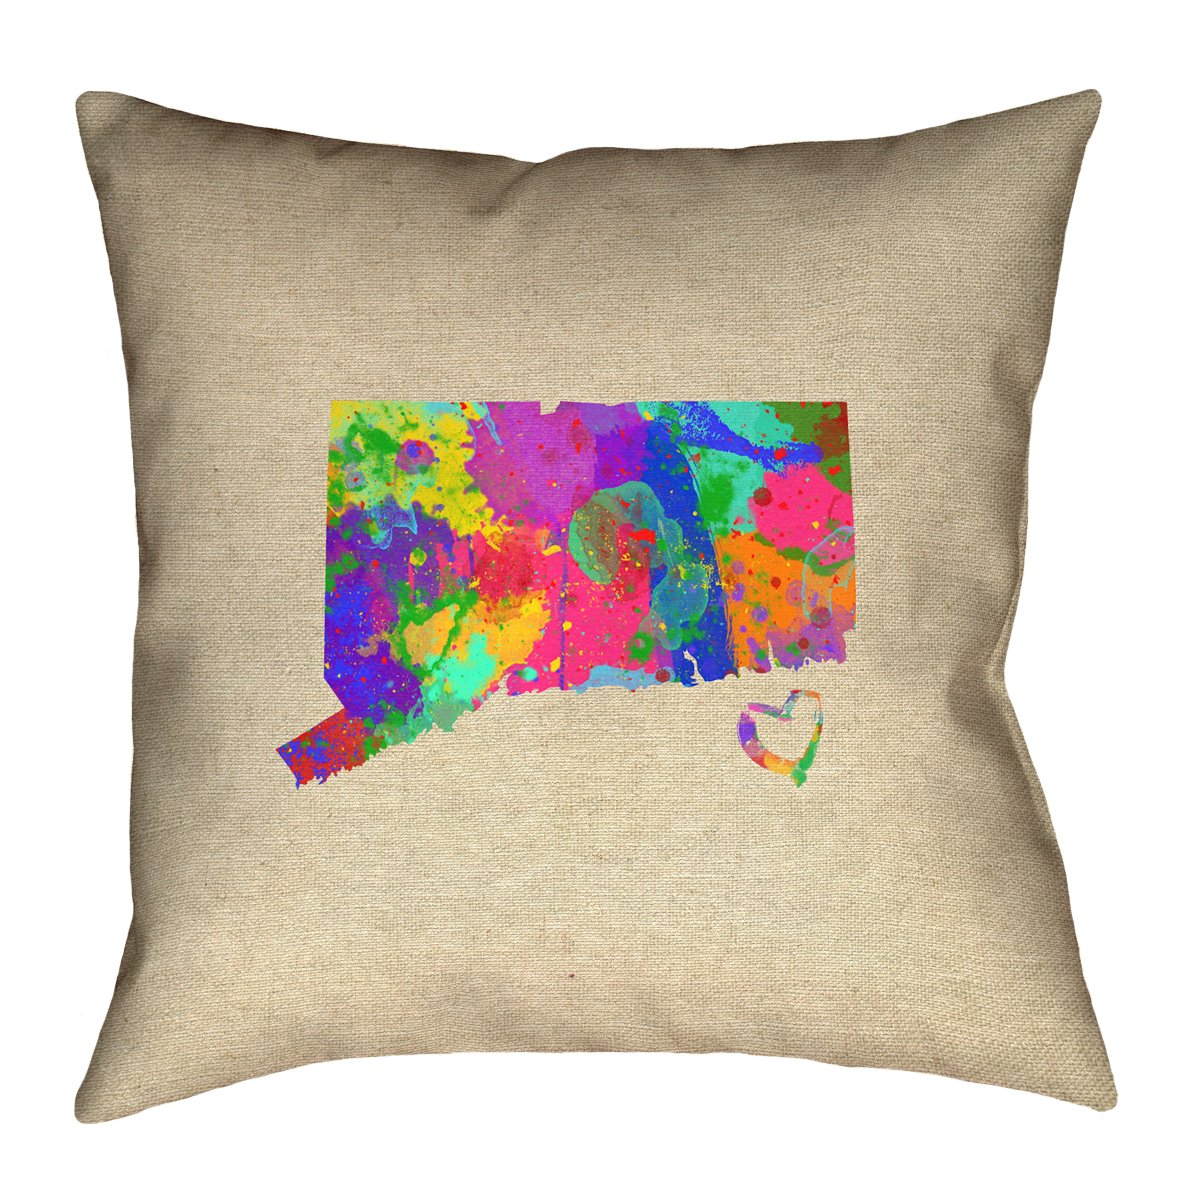 ArtVerse Katelyn Smith 14 x 14 Spun Polyester Double Sided Print with Concealed Zipper /& Insert Connecticut Pillow